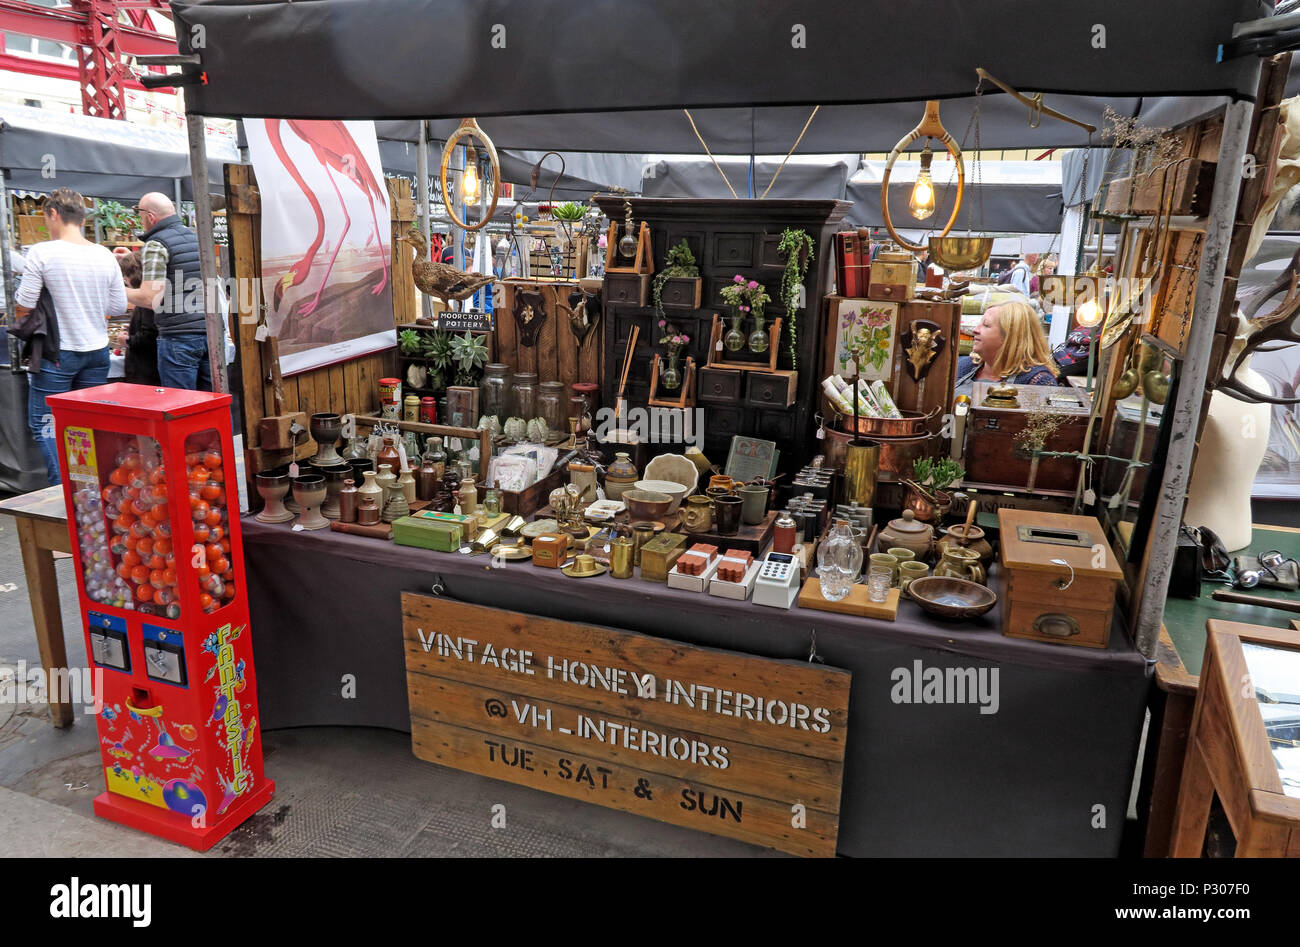 Altrincham Market House, Vintage Honey Interiors Stall, Trafford, Greater Manchester, North West England, UK - Stock Image